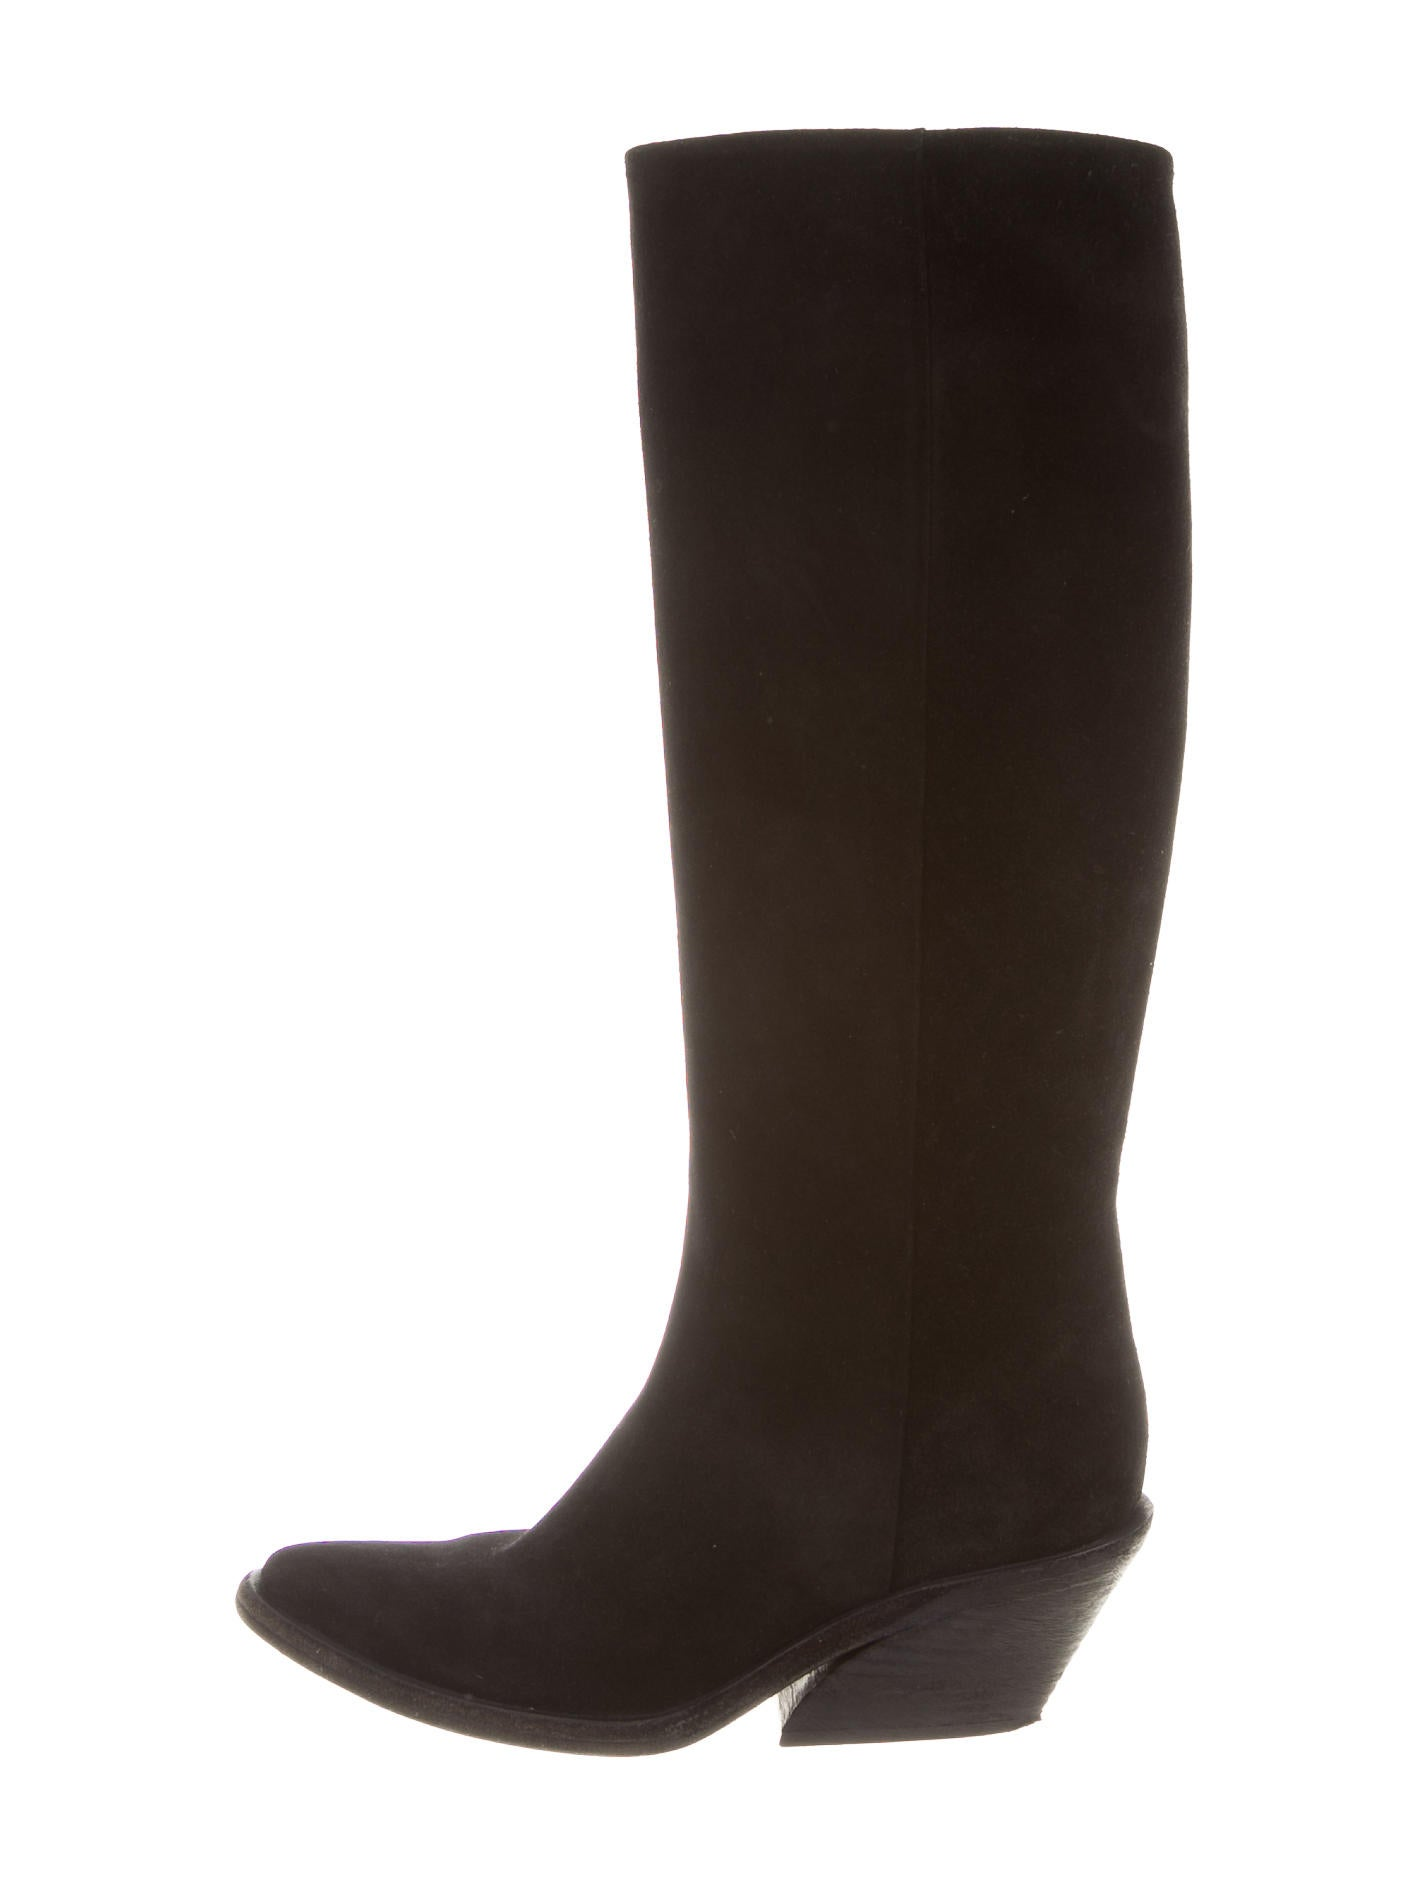 givenchy suede knee boots shoes giv33695 the realreal